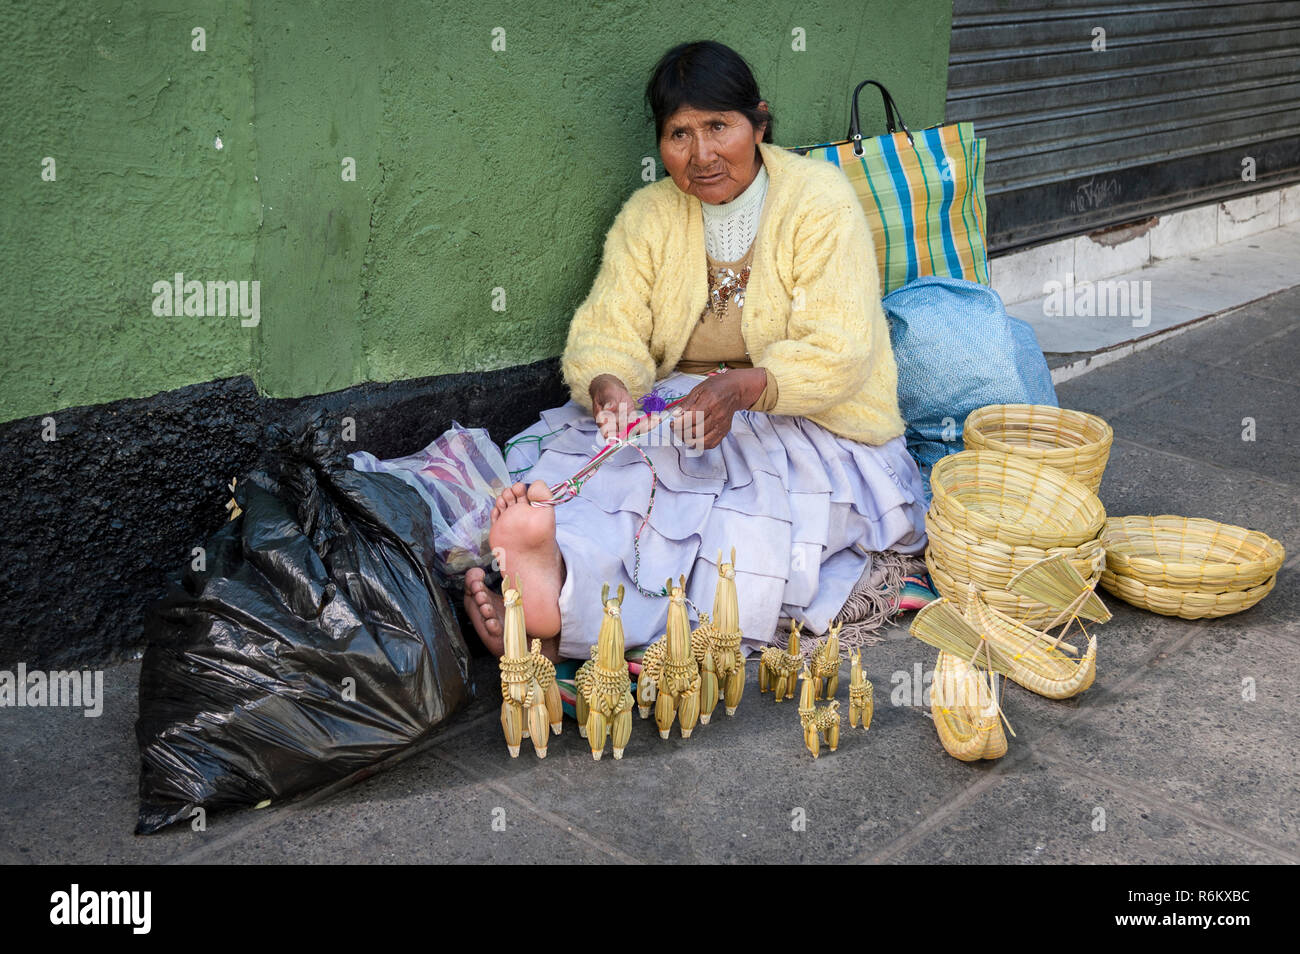 b735762580 LA PAZ, BOLIVIA - AUGUST 19, 2017 : Unidentified street woman vendor  wearing traditional